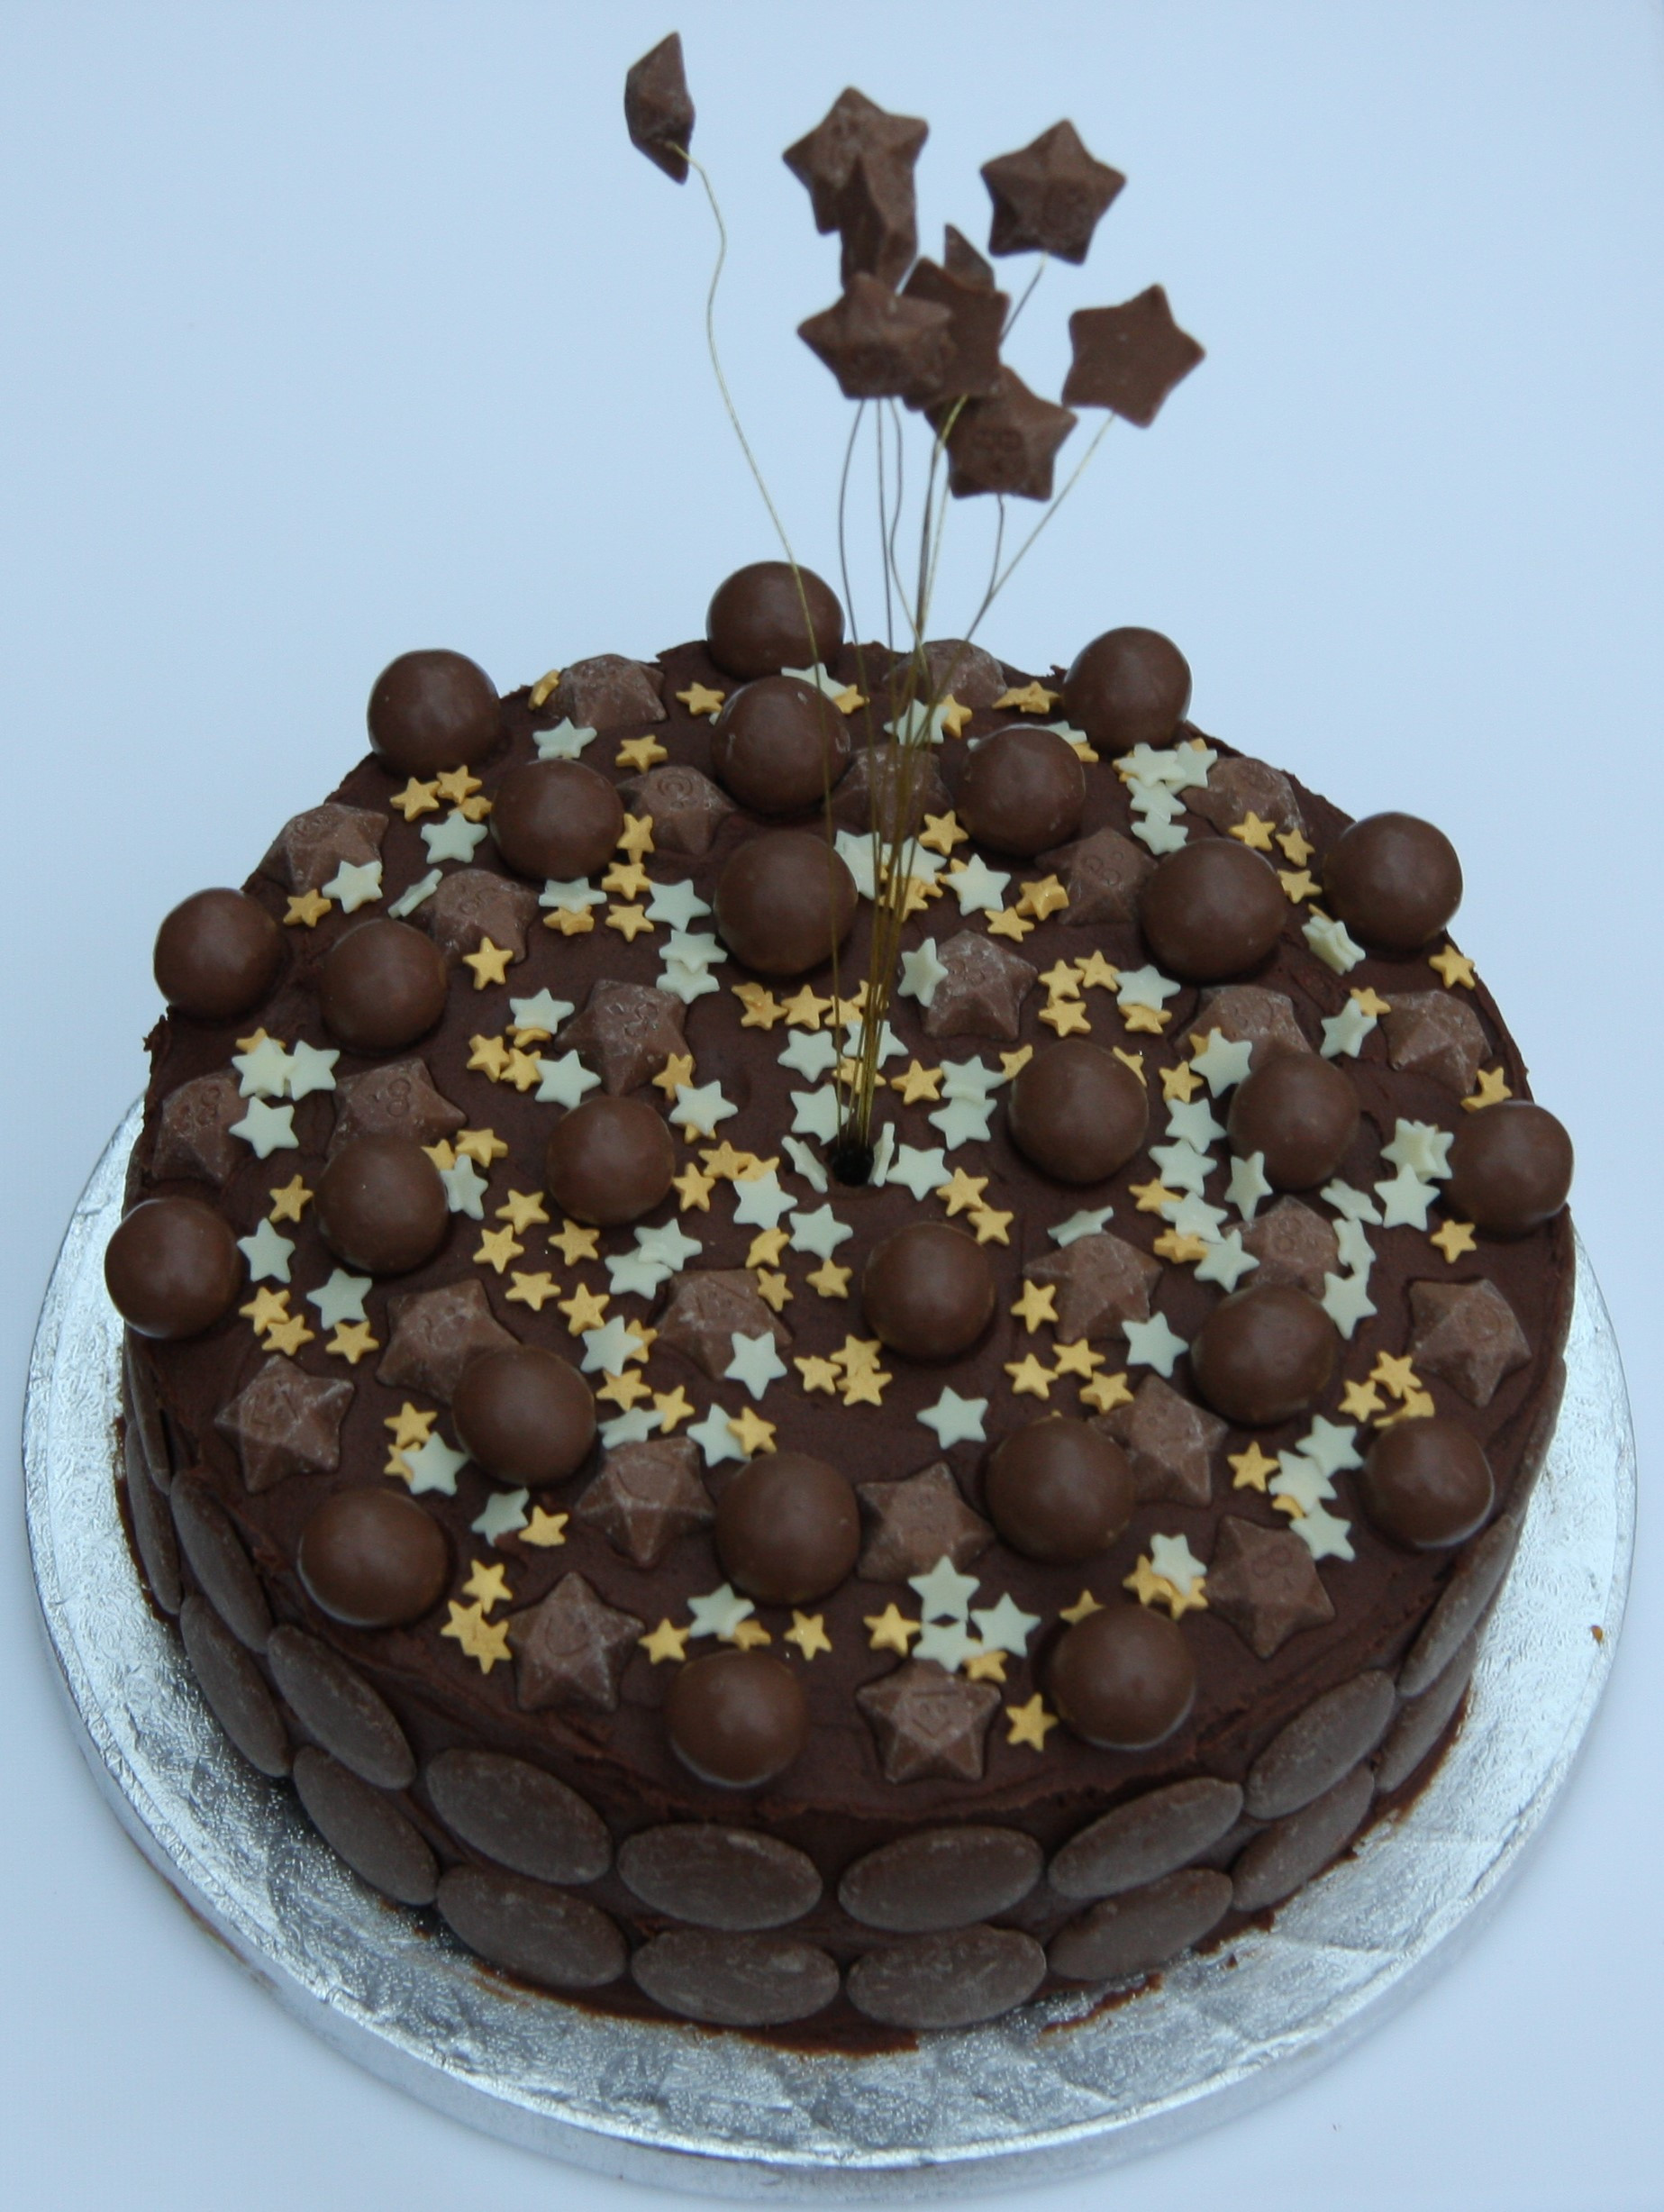 Chocolate Birthday Cake  Chocolate Birthday Cake for Kids and Chocolate Lovers